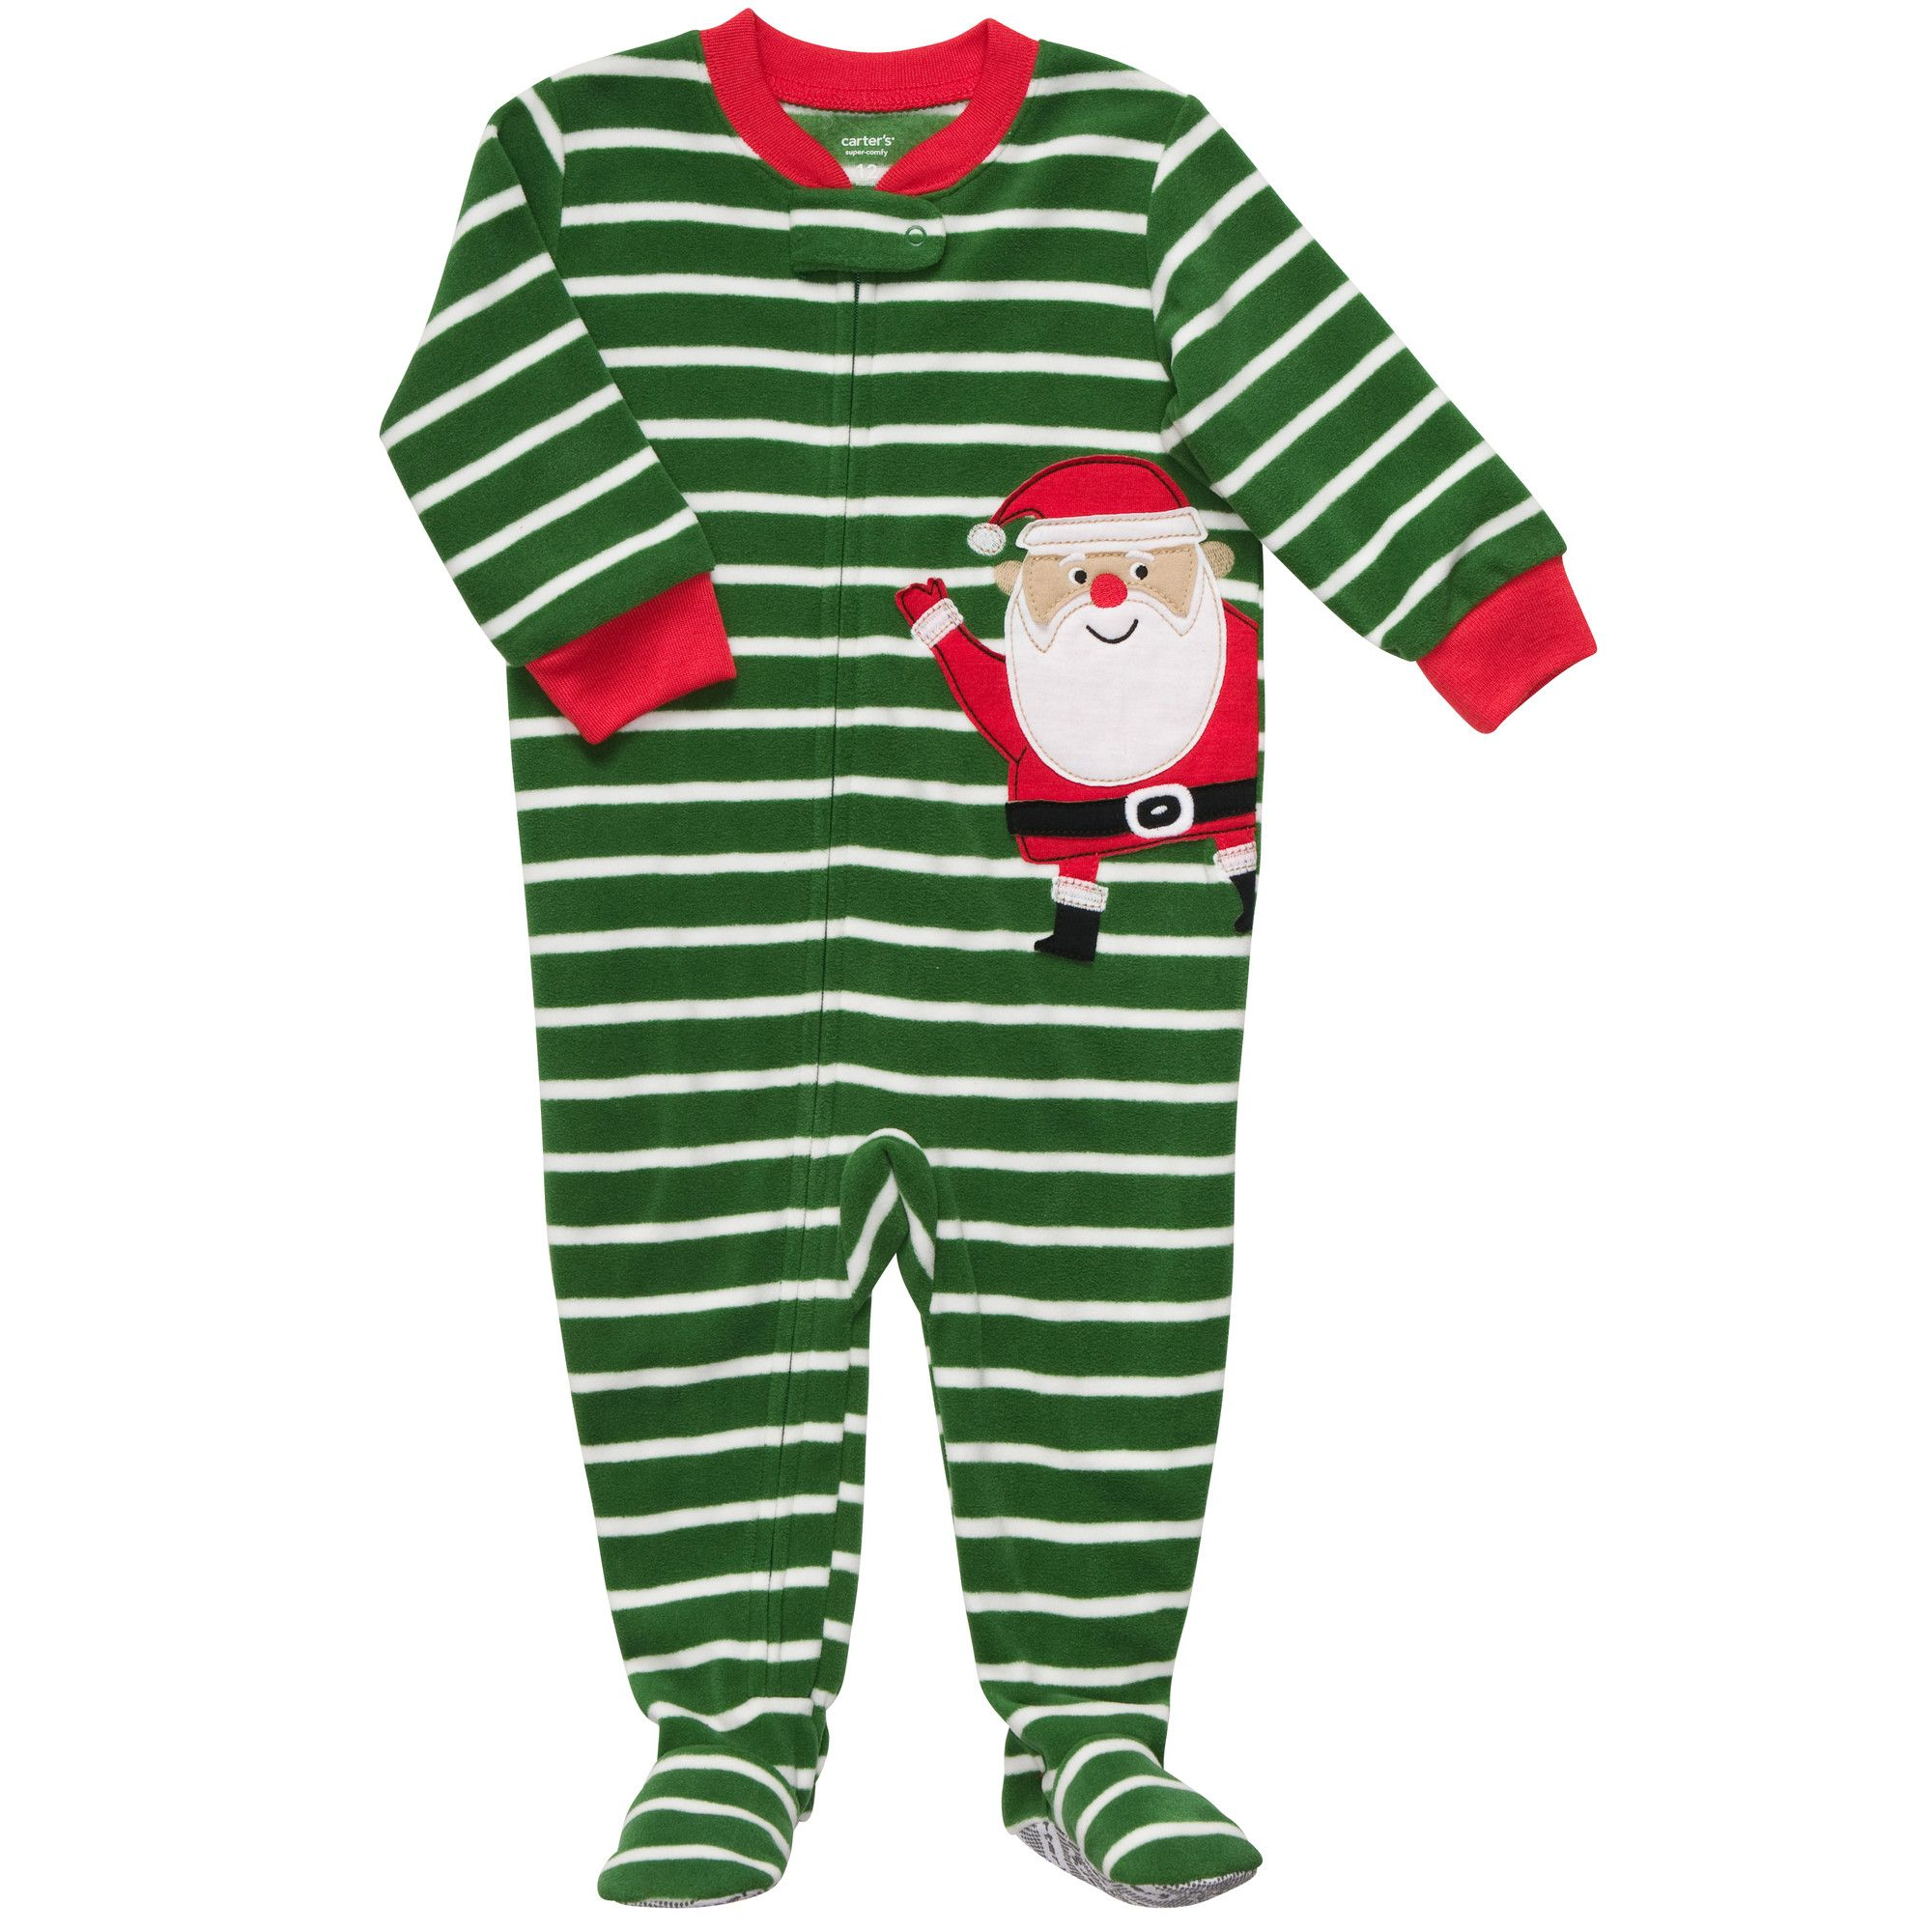 1Piece Microfleece Pj's Holiday Shop Pajamas (With